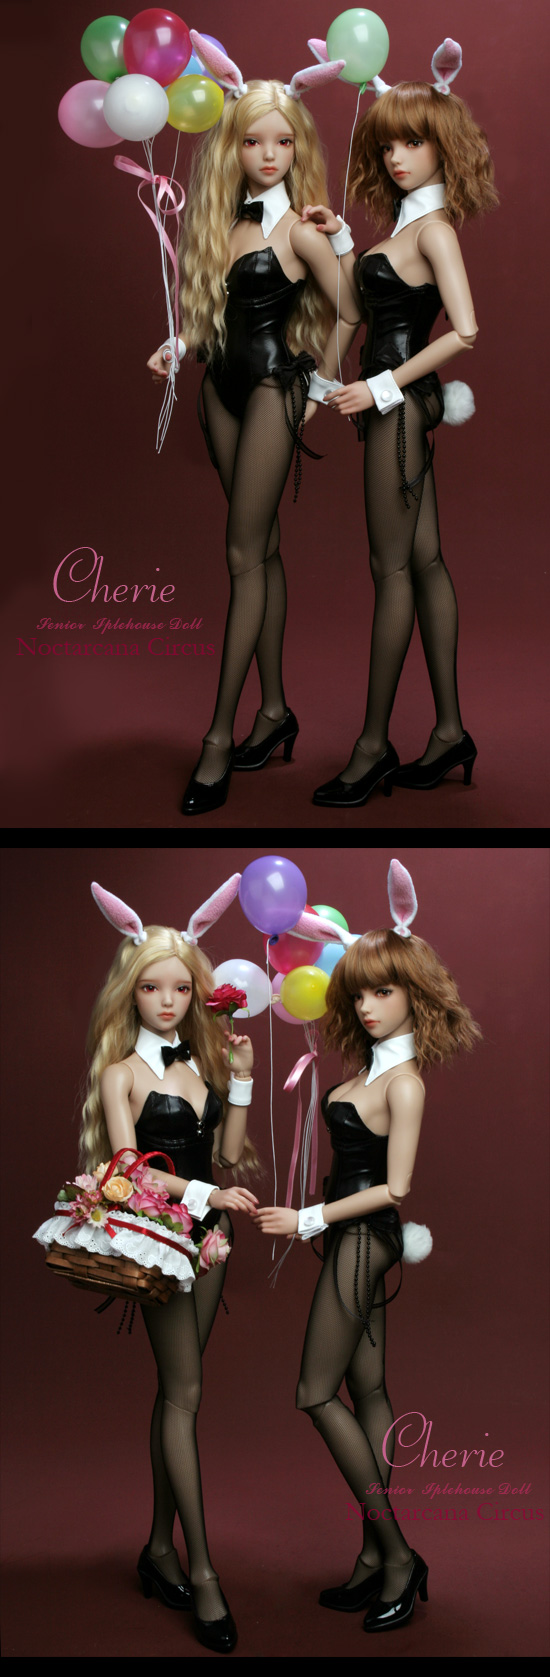 cherie, ball joint doll, bjd